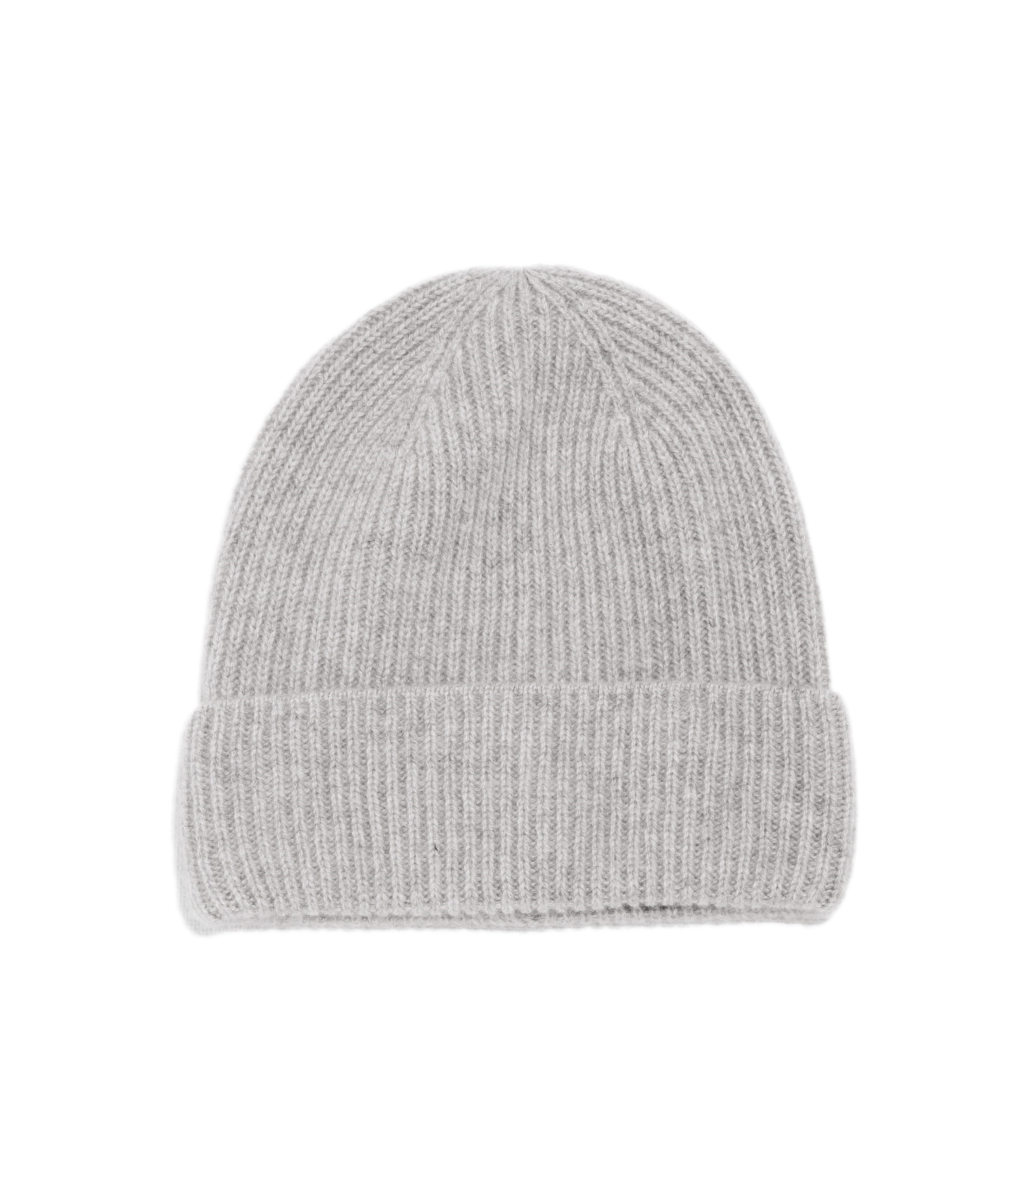 & Other Stories Cashmere Beanie in grey